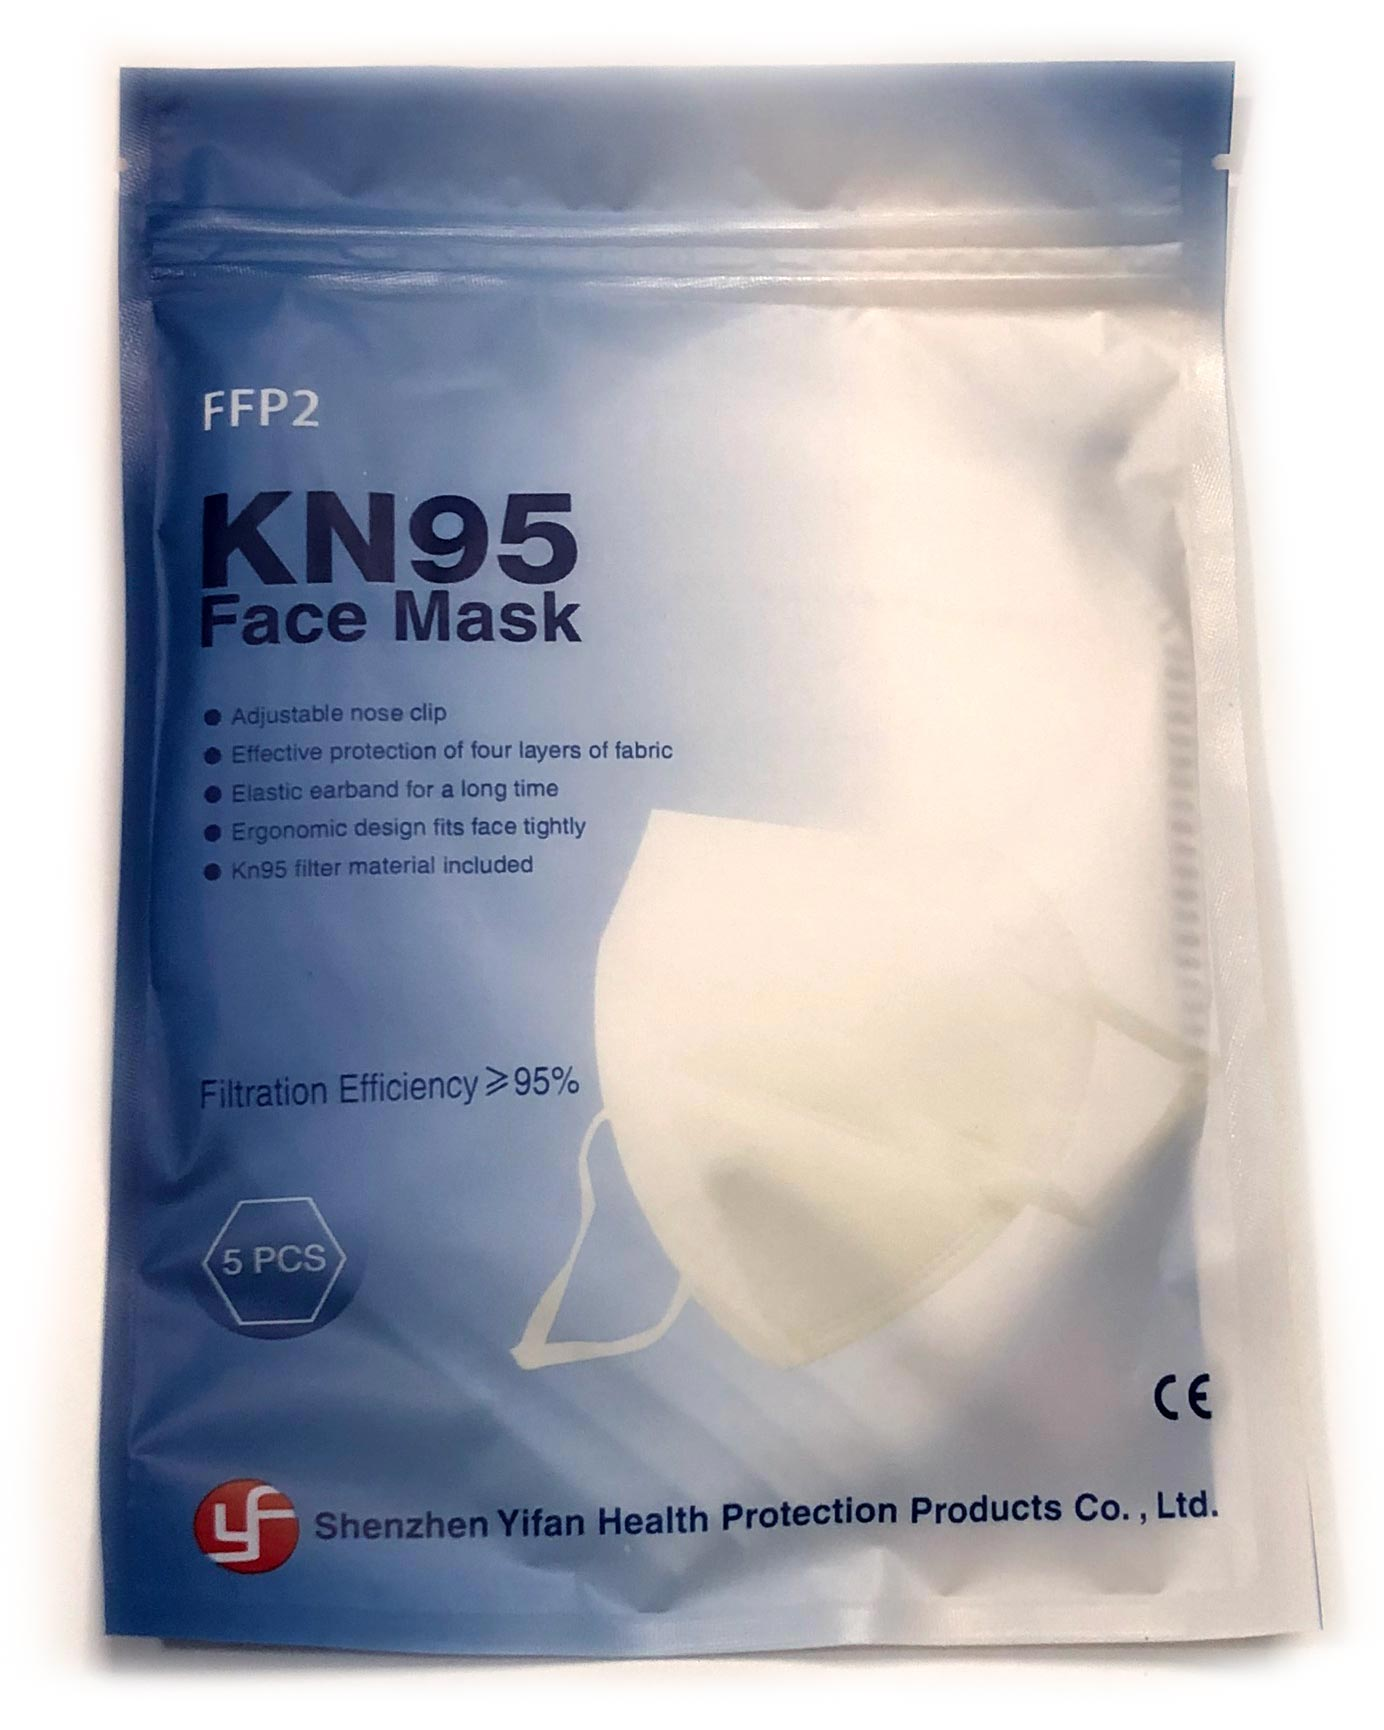 KN95 Face Mask: 5 PCS/pack, 5 PACKS, 25 Pieces  total